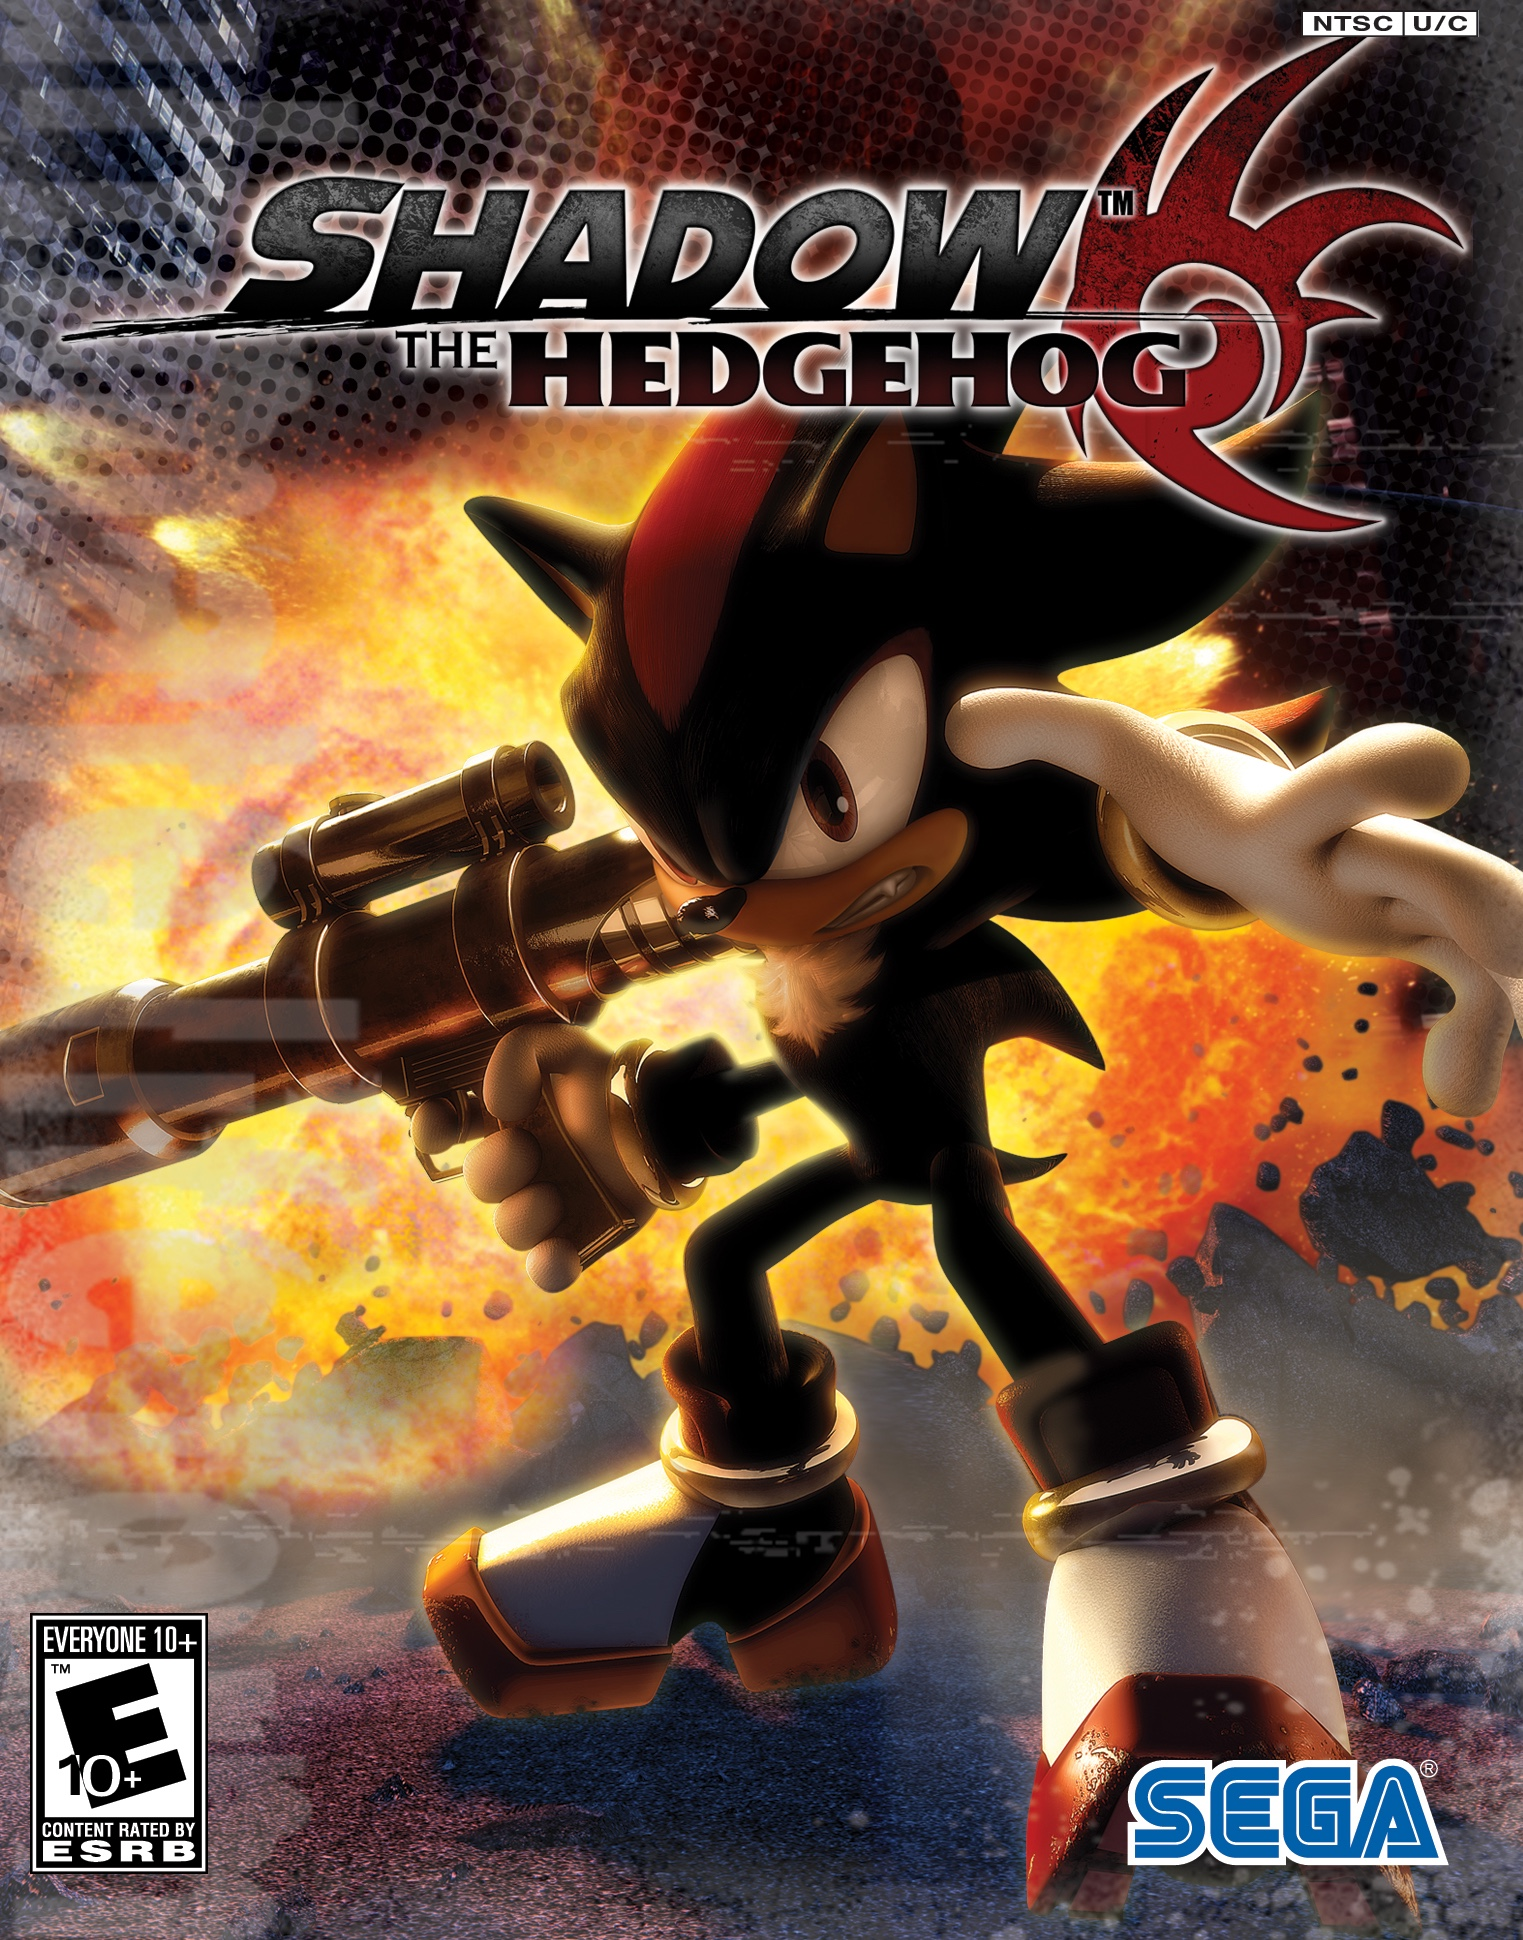 Image result for shadow the hedgehog game""